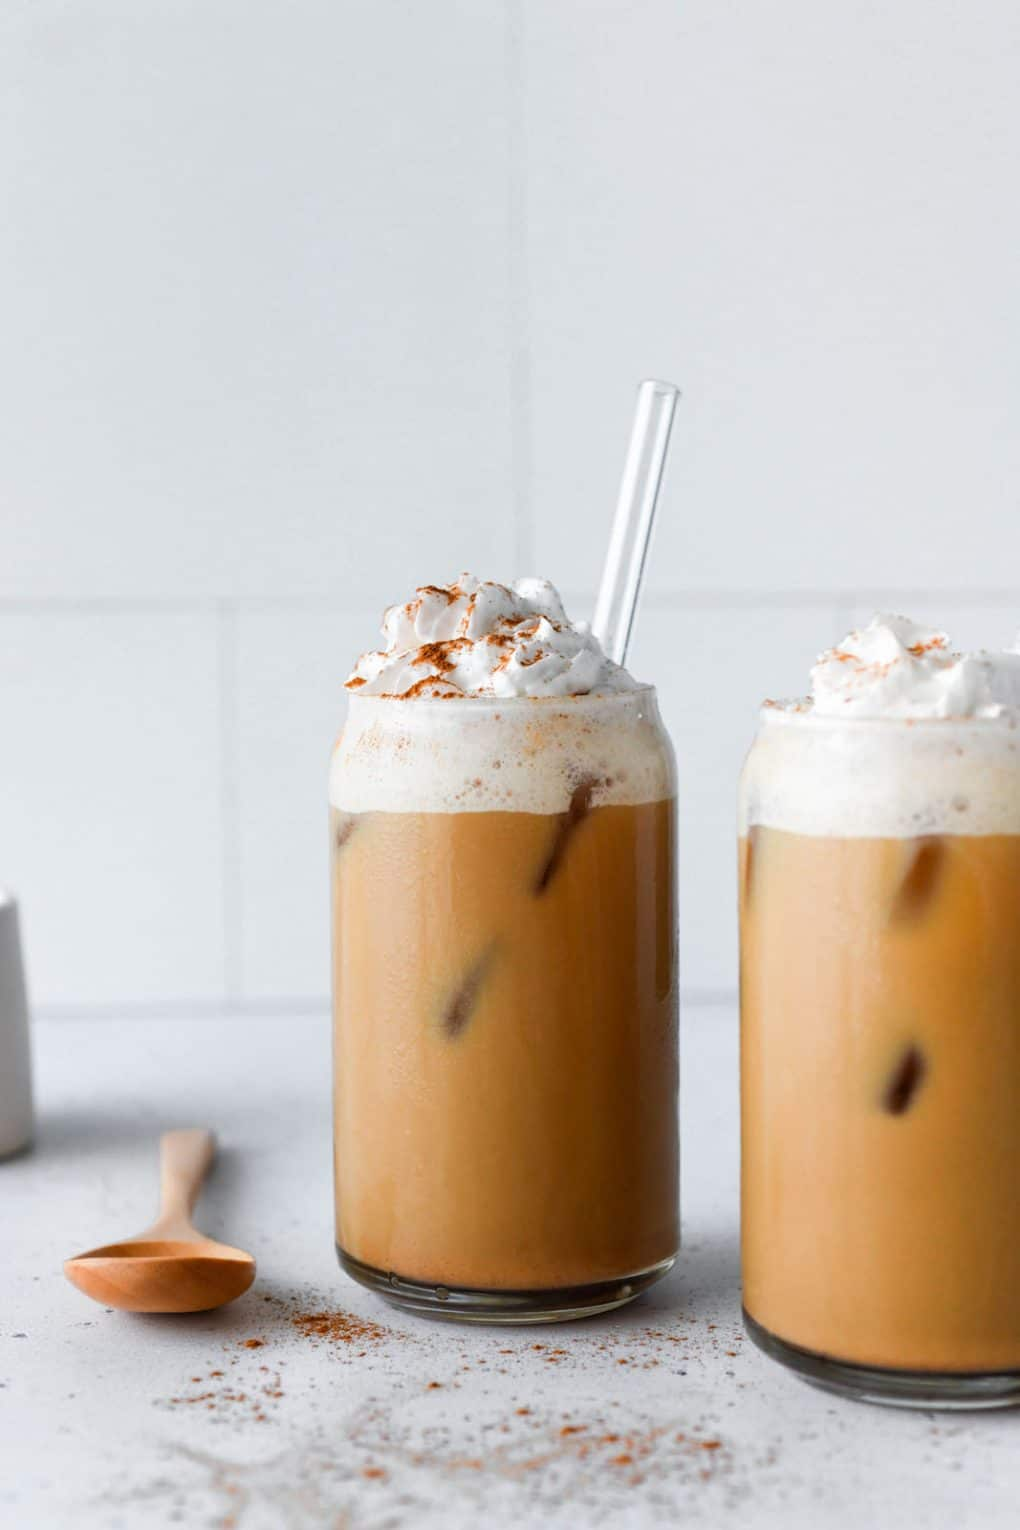 Straight on shot of two side by side iced pumpkin spice lattes topped with lots of whipped cream and a dash of pumpkin pie spice. On a light colored background with a small wooden spoon in the background.